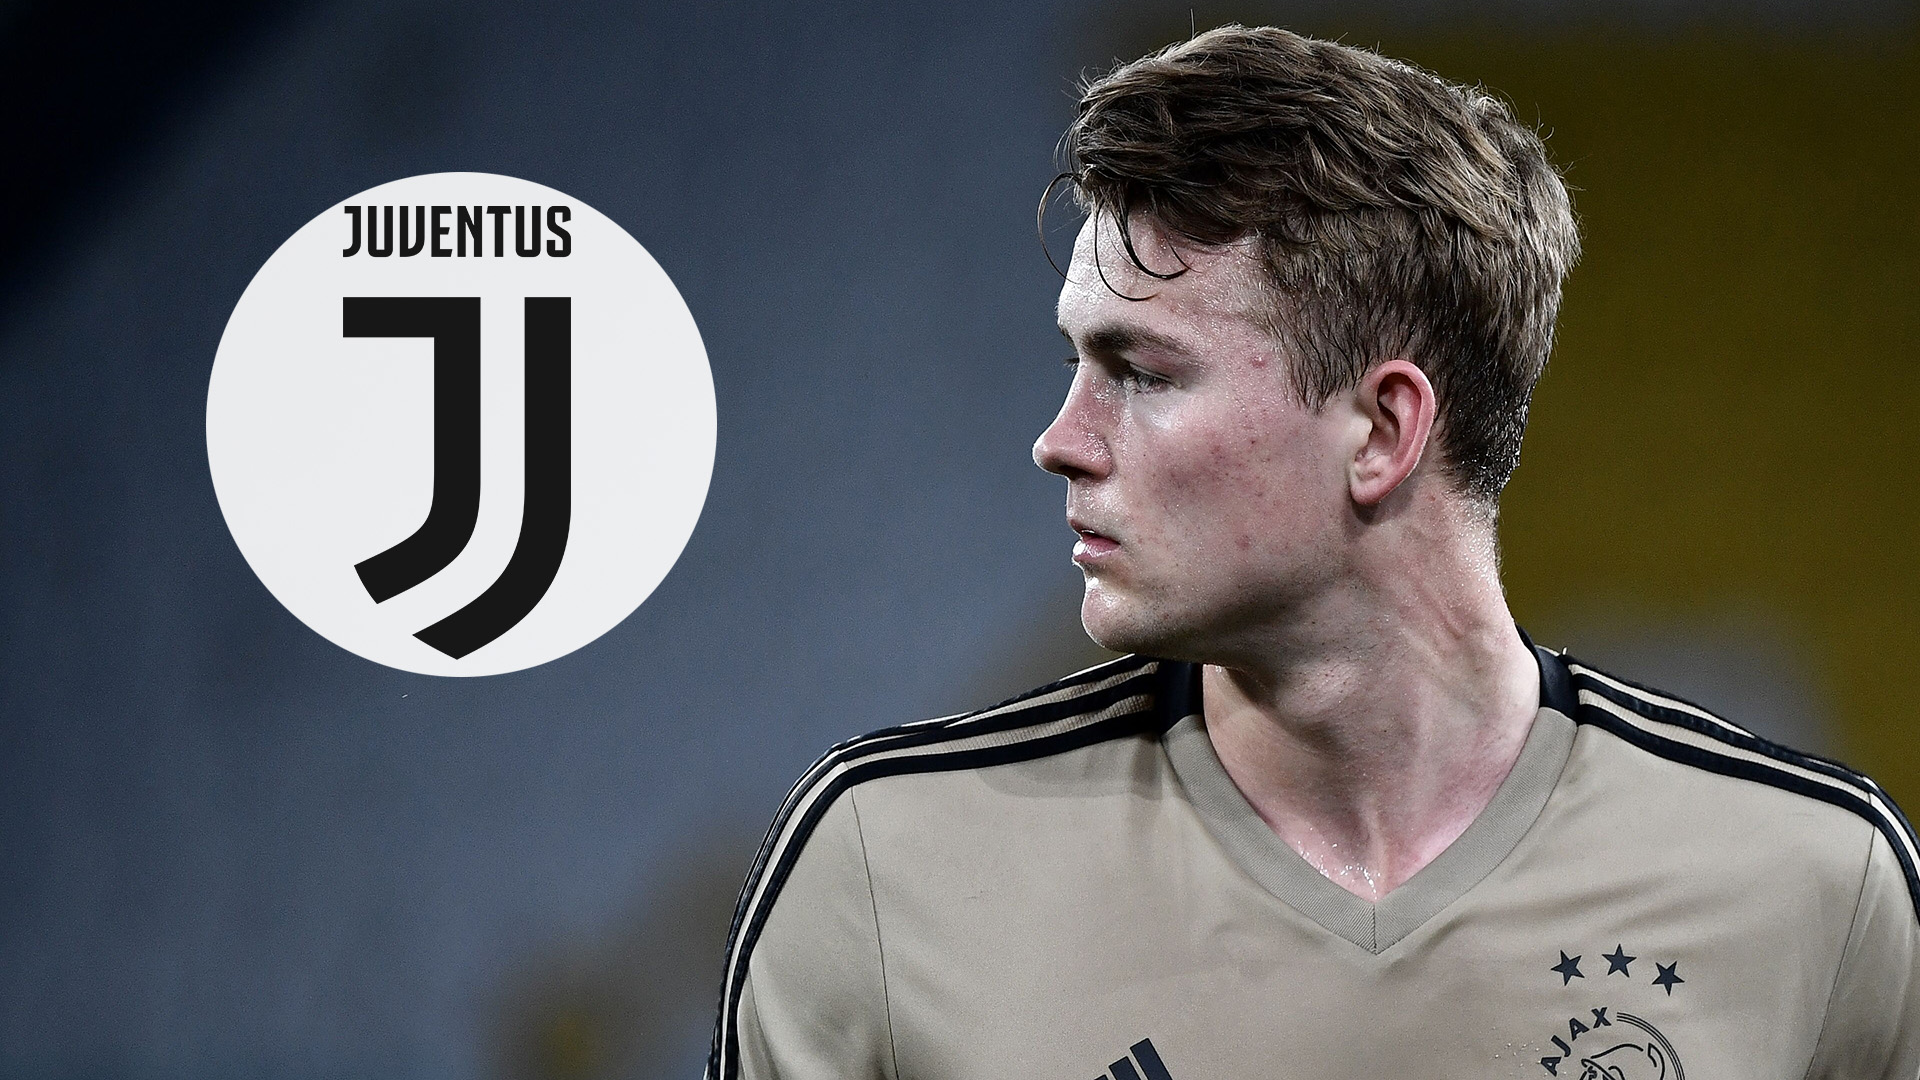 Matthijs de Ligt: Ajax captain 'awaiting possible transfer' - Juventus favourites